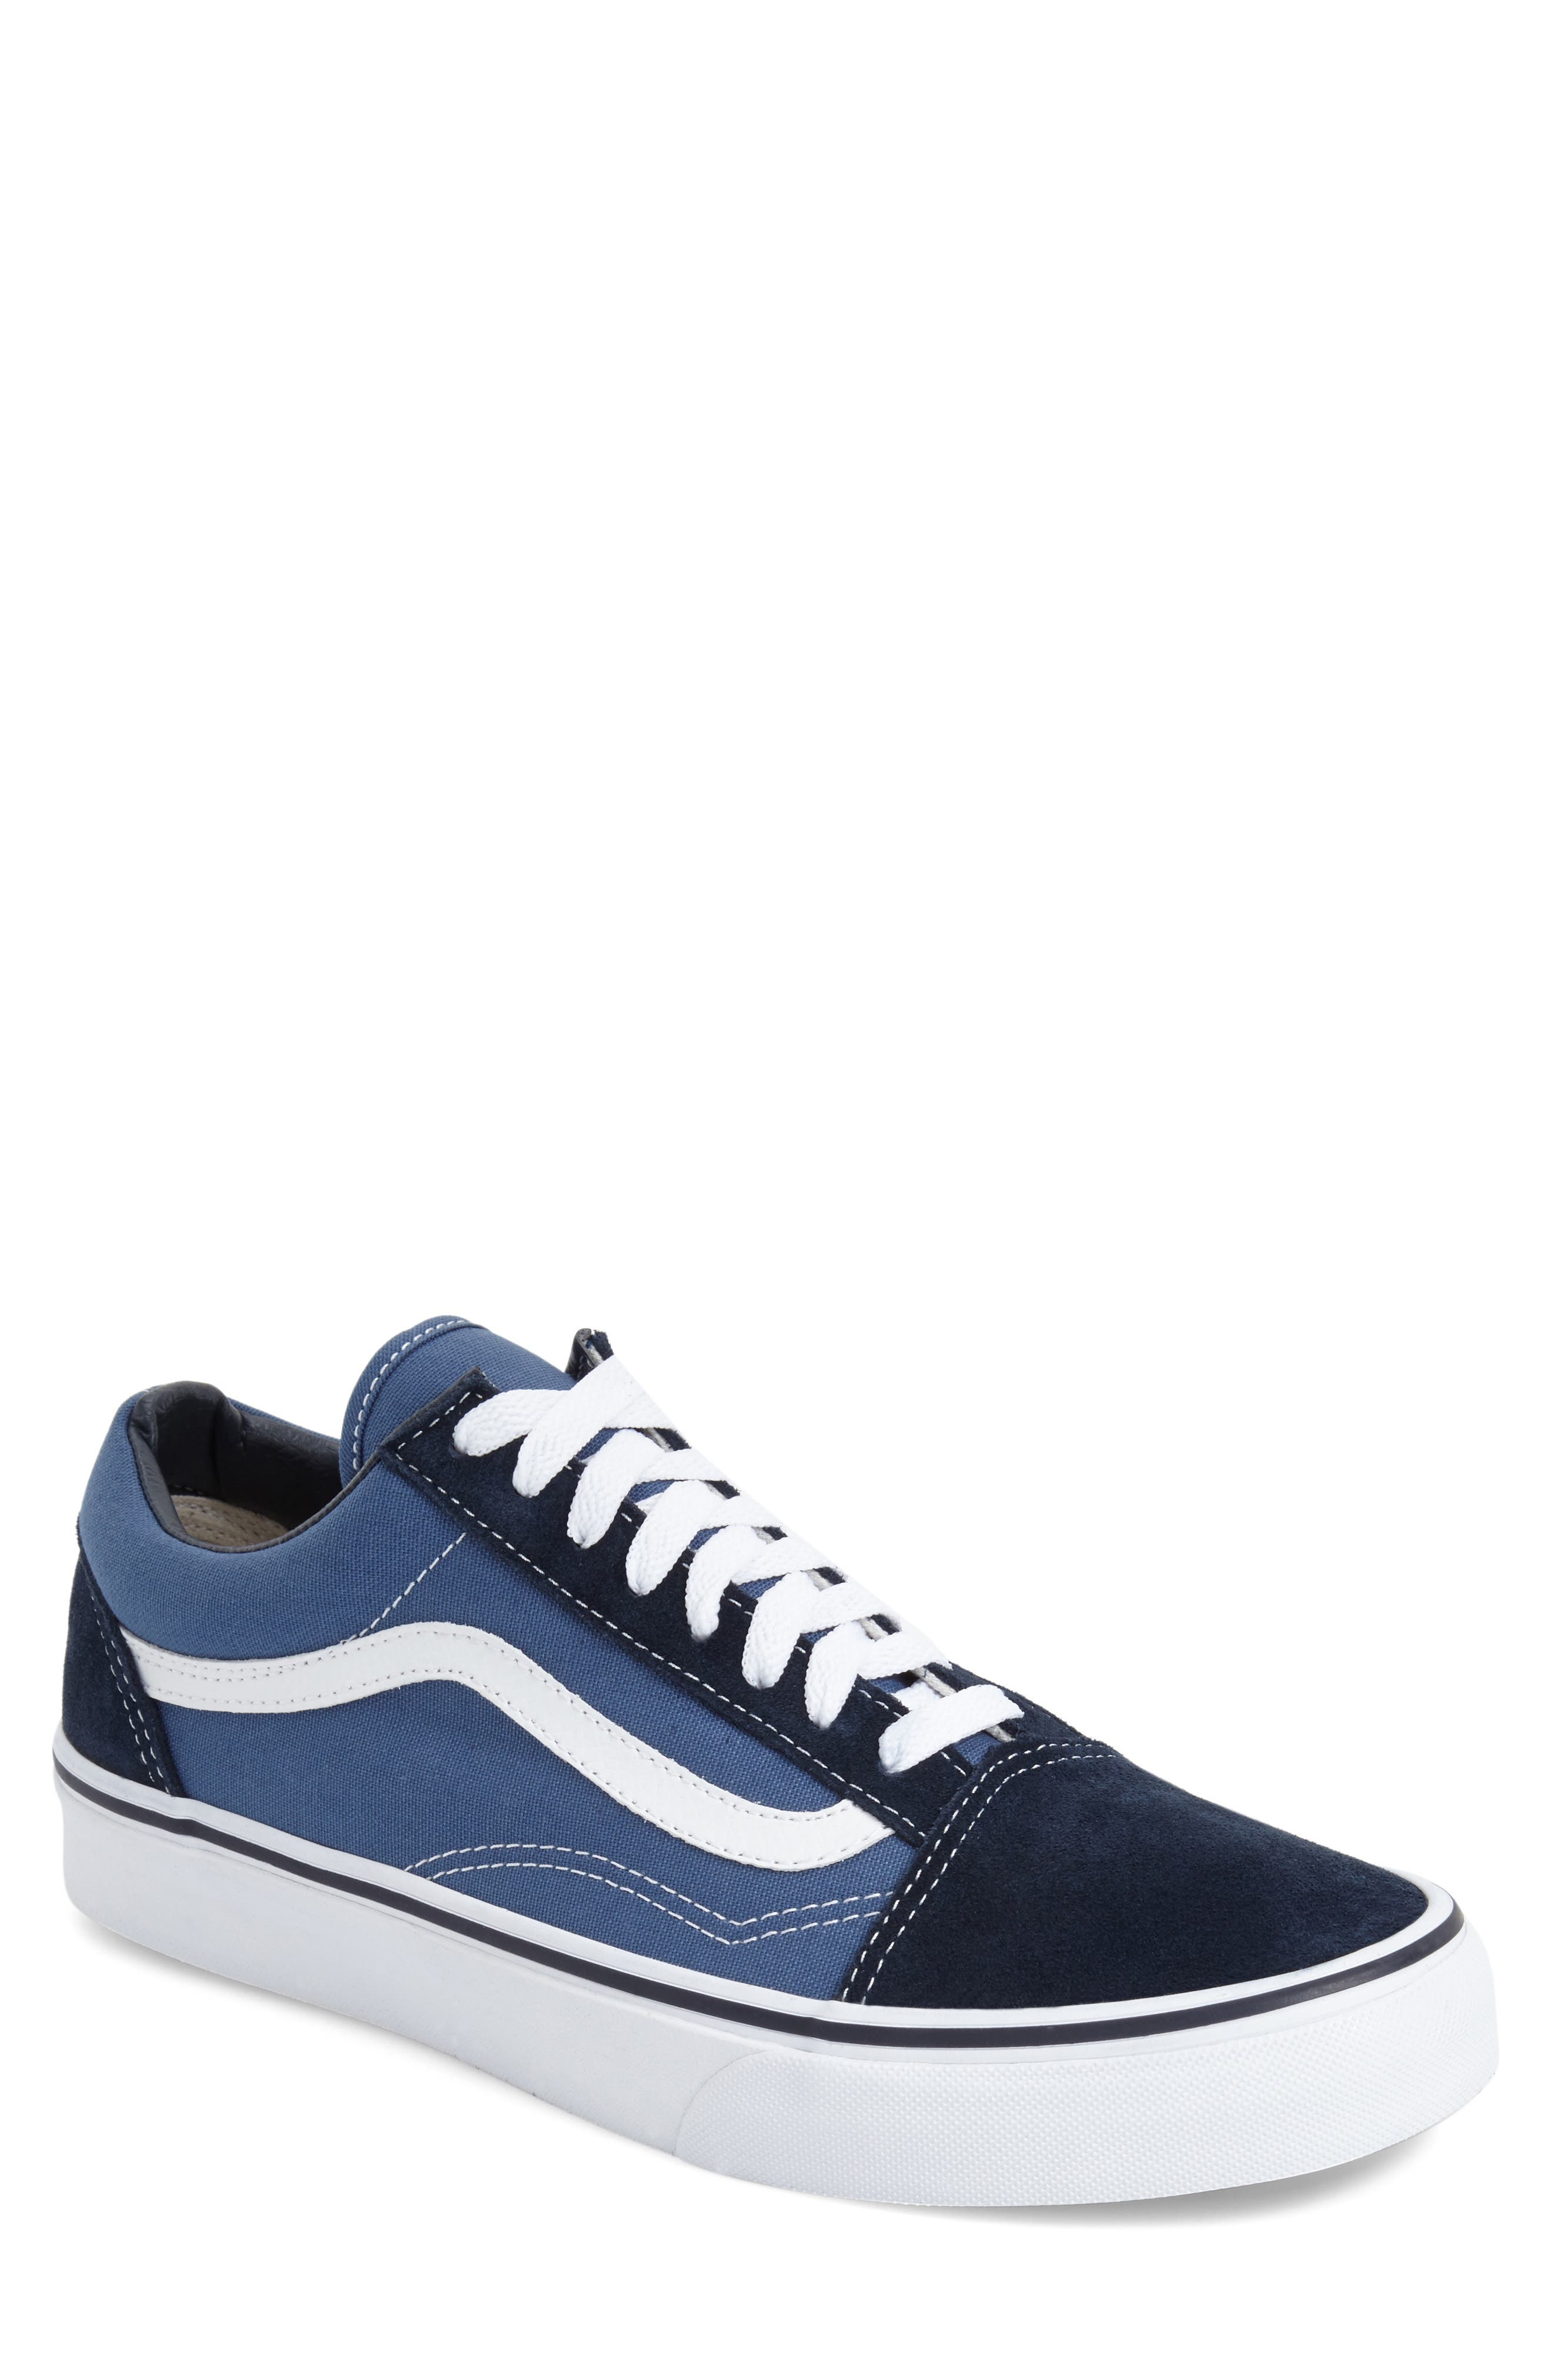 Men's Vans View All: Clothing, Shoes & Accessories   Nordstrom